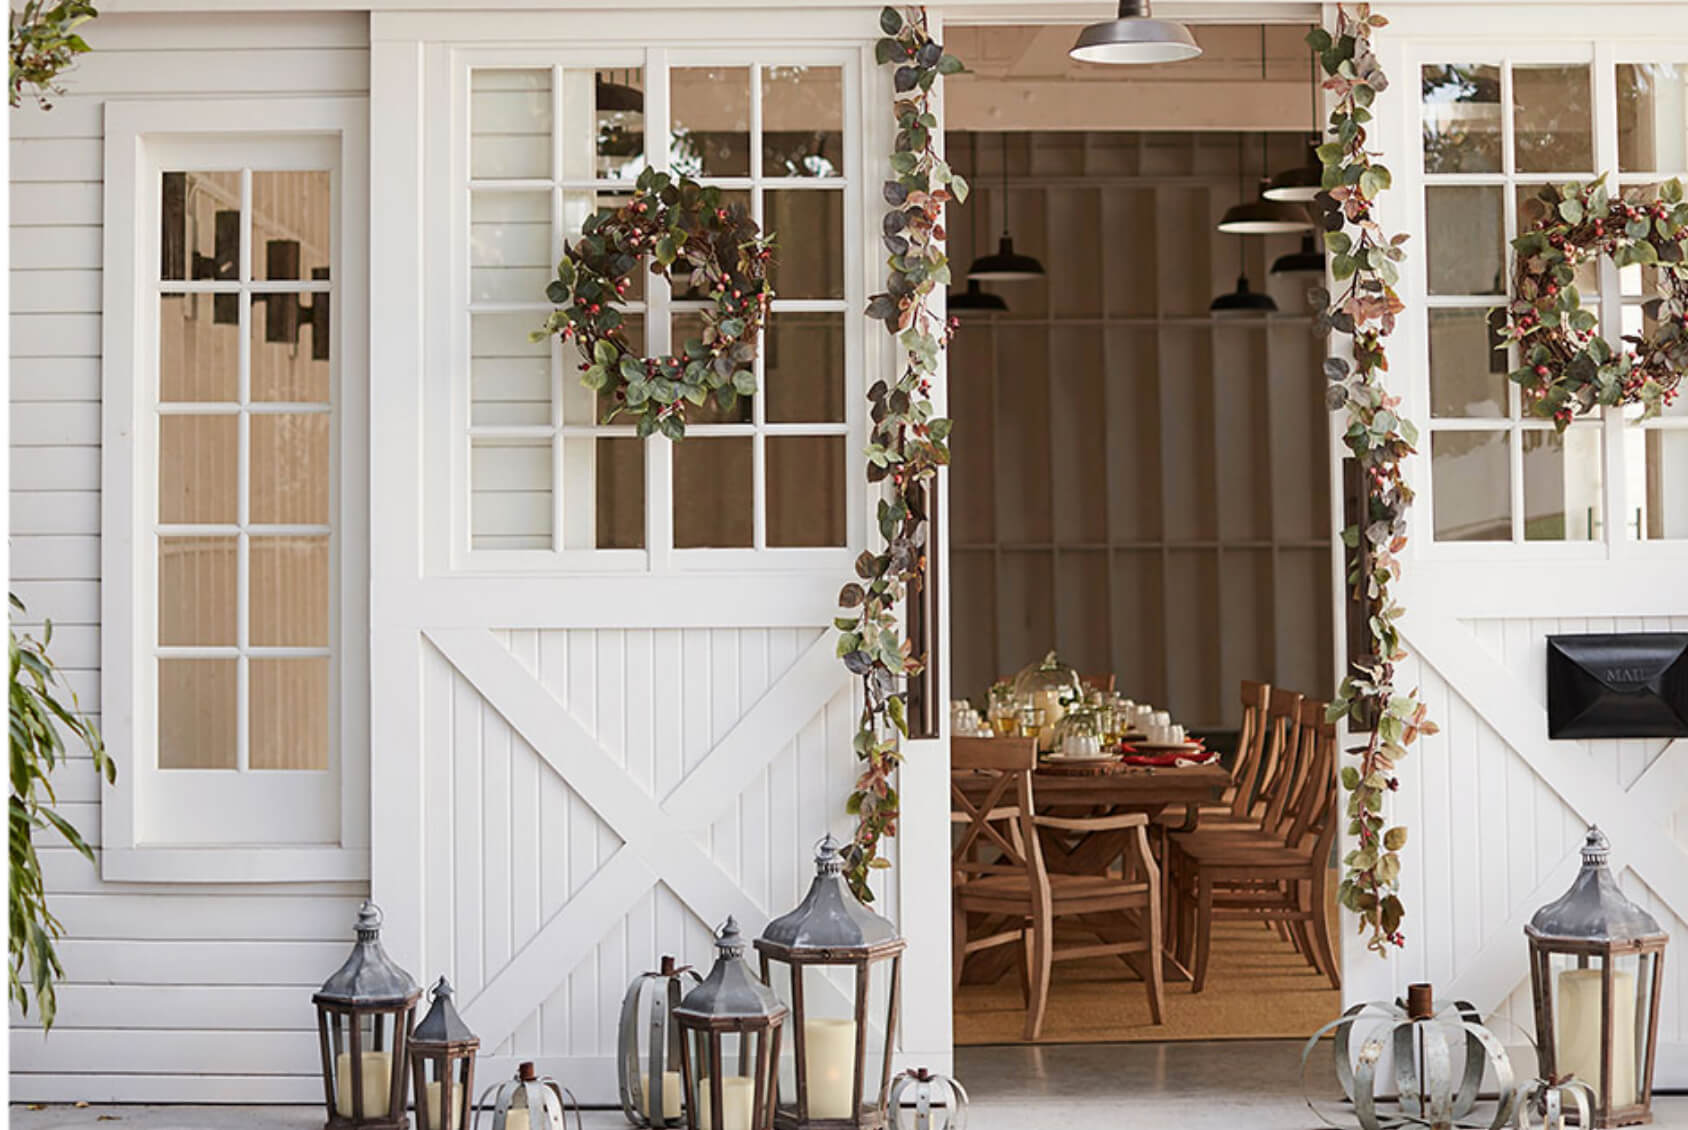 Gorgeous Ideas for Fall Porch Decorating | Freshome.com